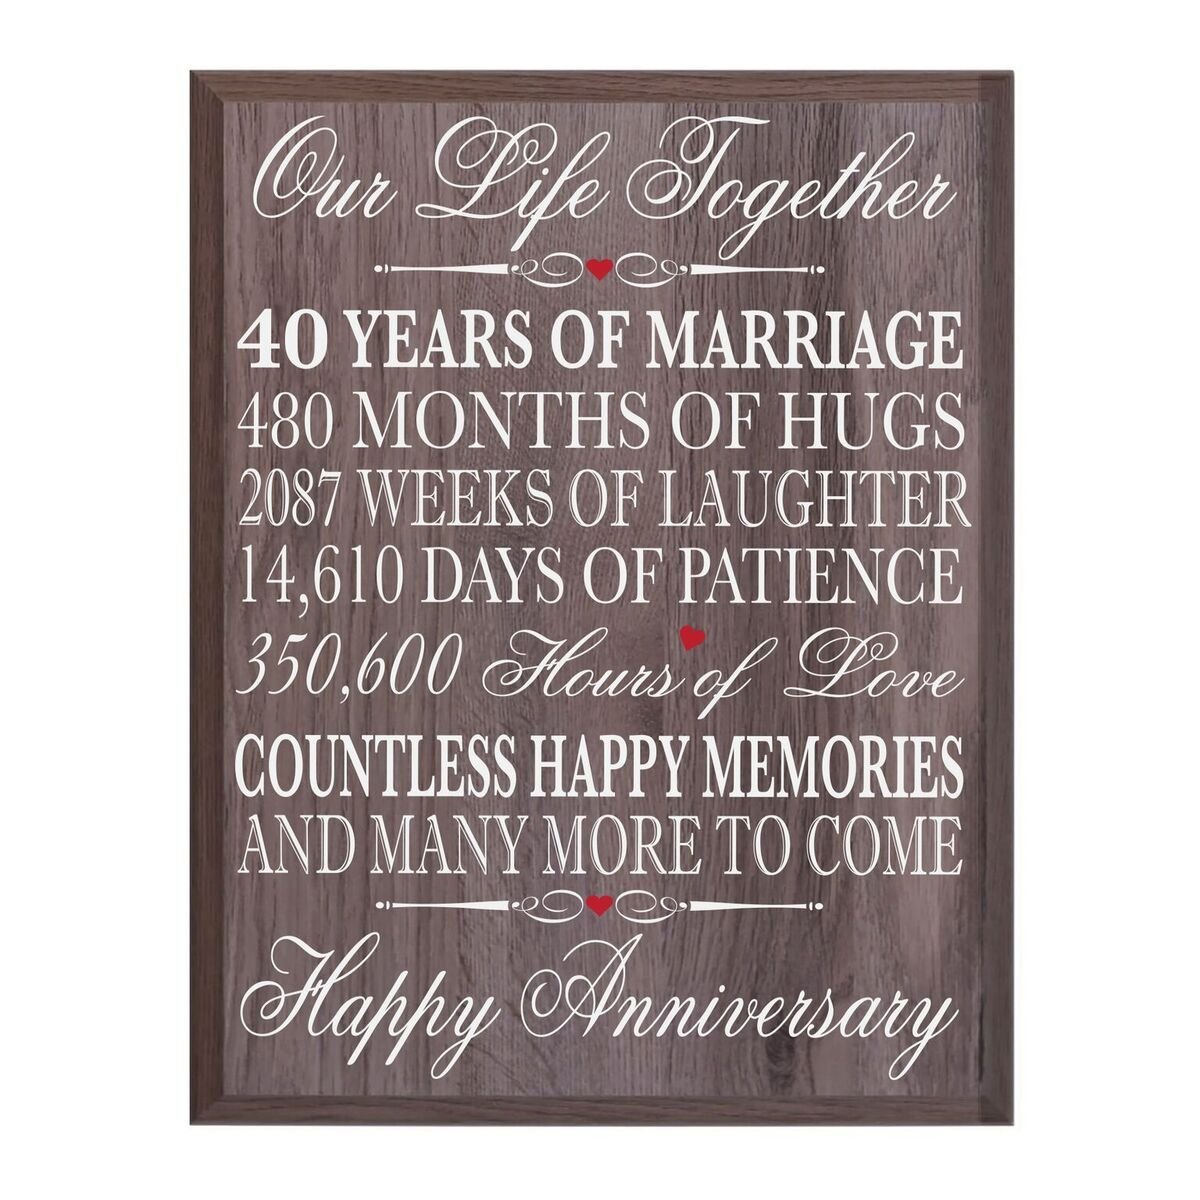 40th Wedding Anniversary Wall Plaque Gifts for Couple, 40th Anniversary Gifts for Her,40th Wedding Anniversary Gifts for Him 12'' W X 15'' H Wall Plaque By LifeSong Milestones (Salt Oak)